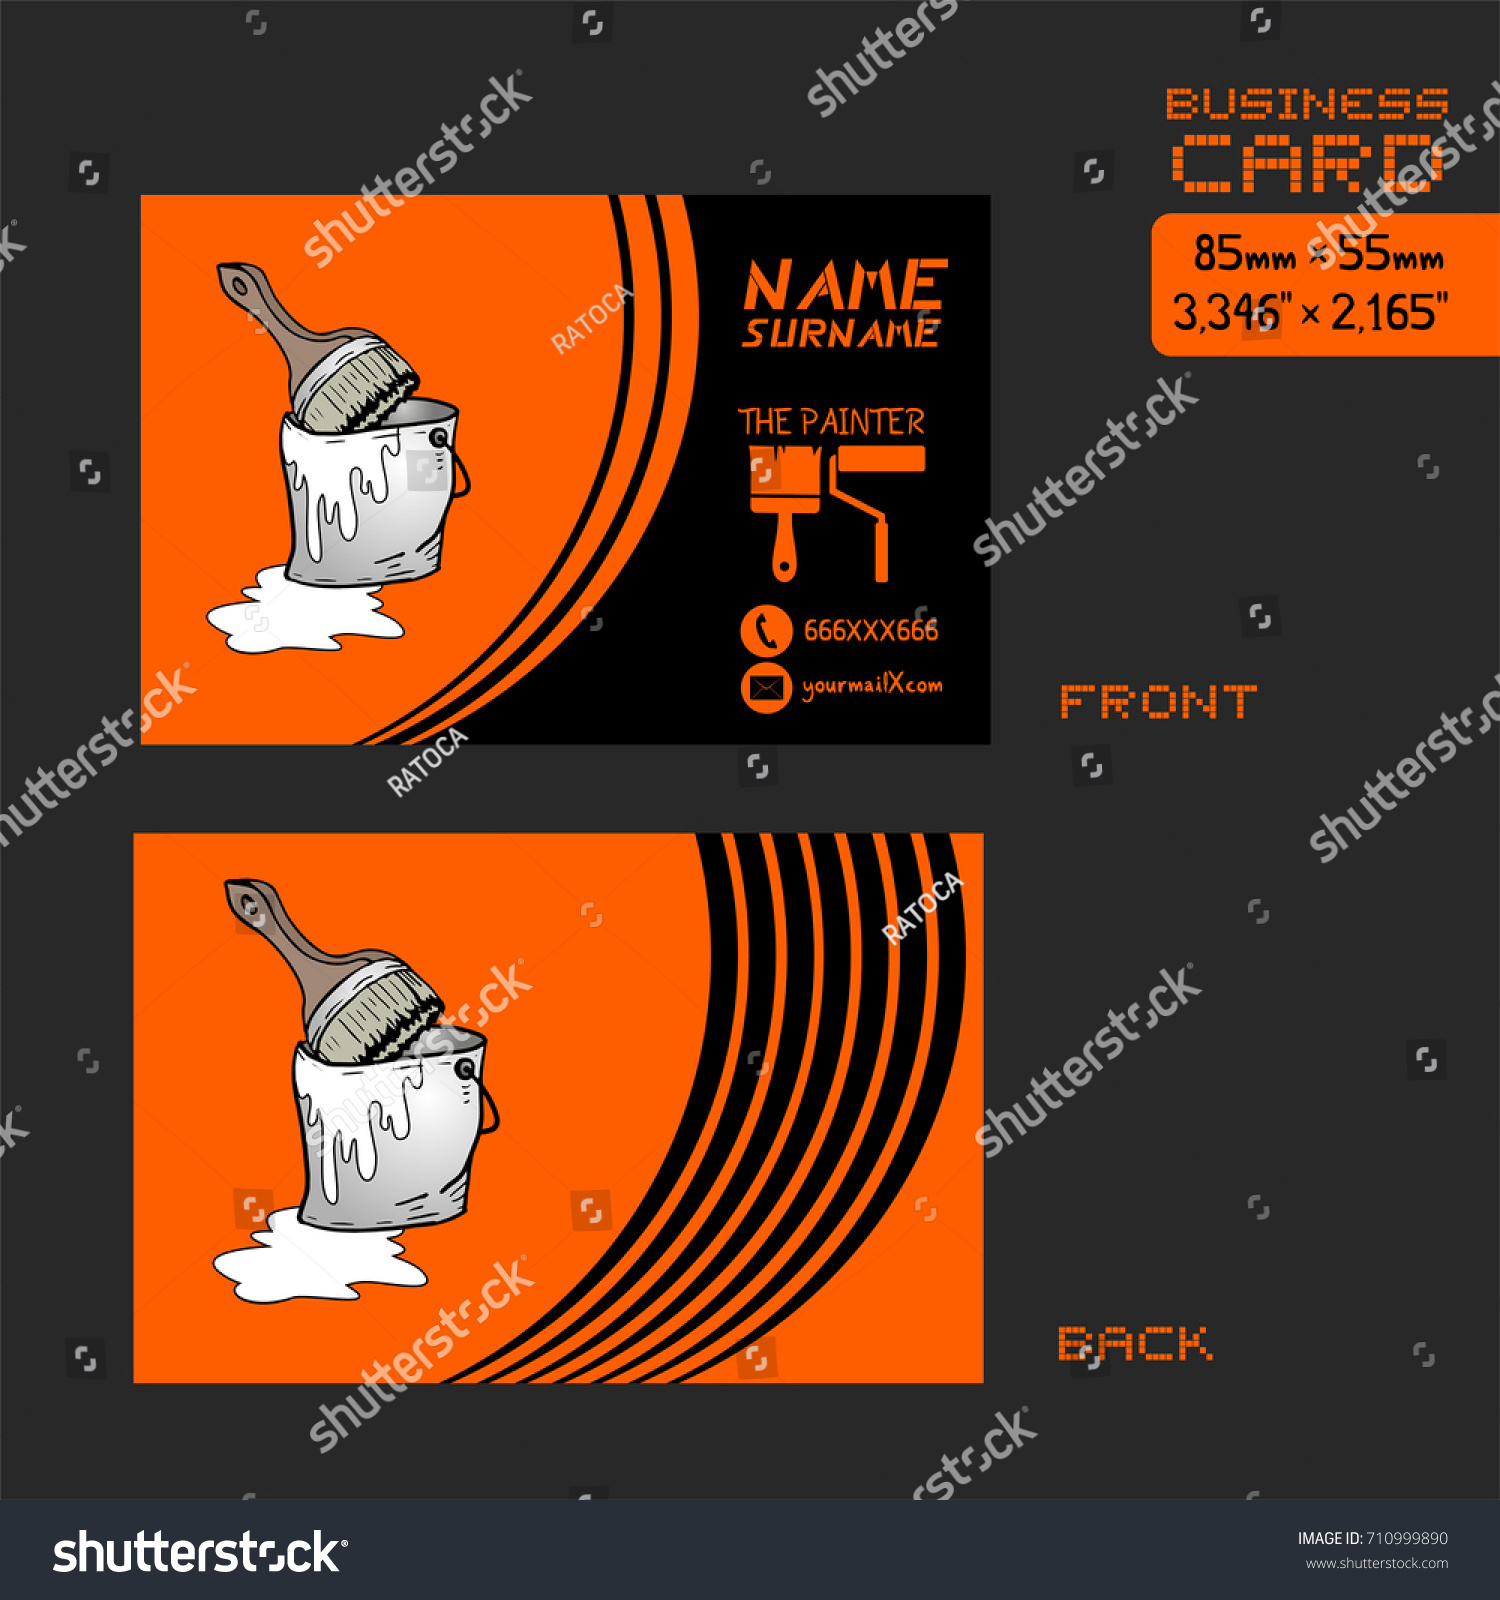 Business card painter worker stock vector 710999890 shutterstock business card for painter worker magicingreecefo Gallery